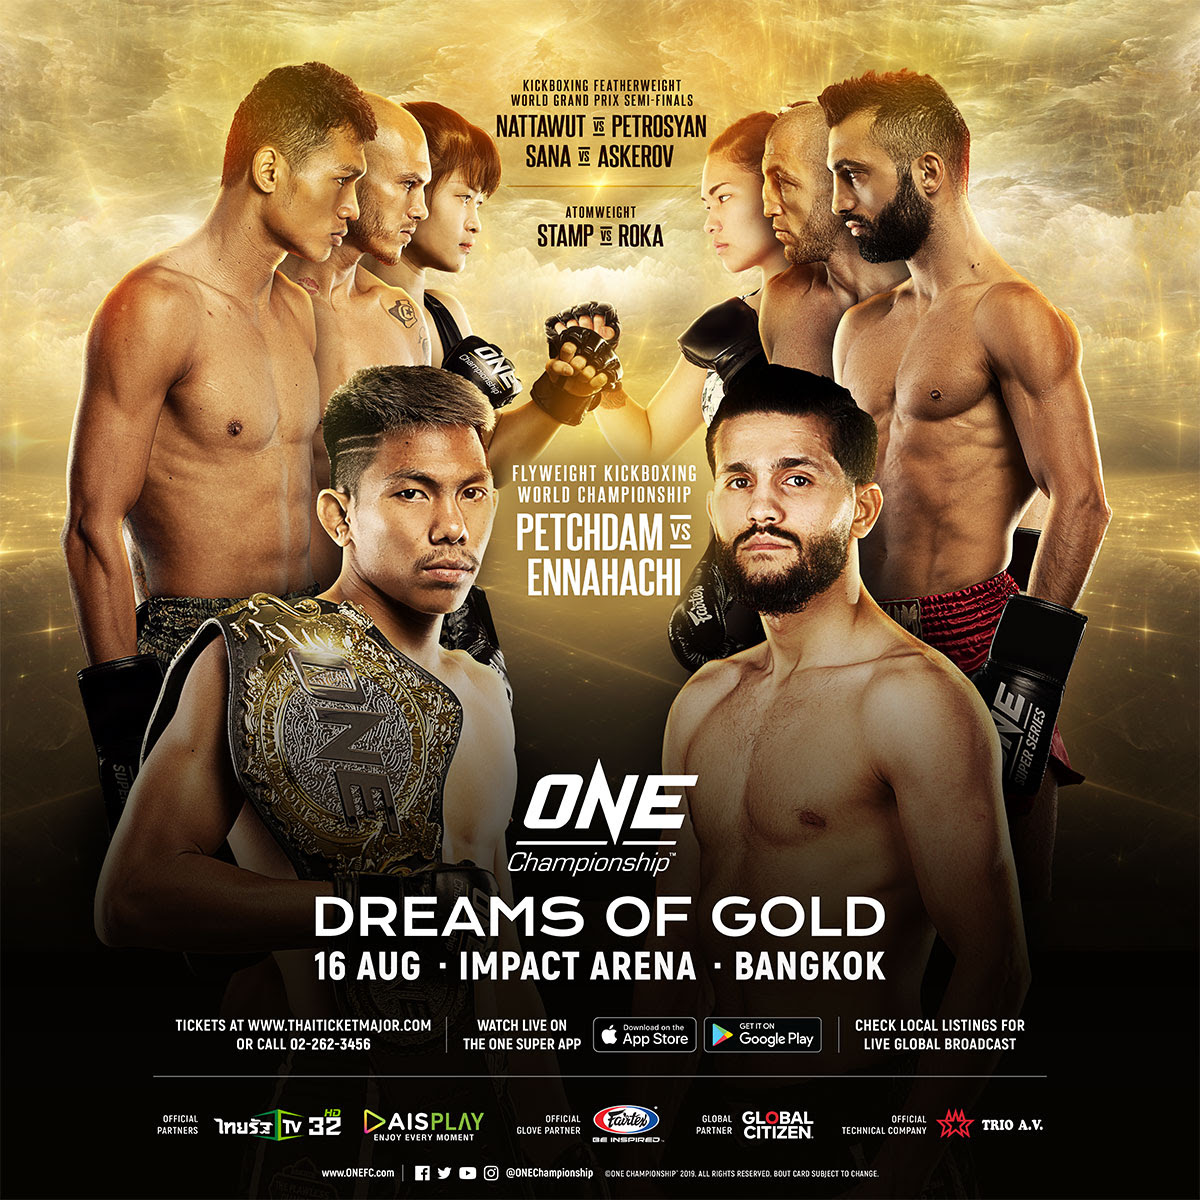 PETCHDAM PETCHYINDEE ACADEMY TO DEFEND ONE FLYWEIGHT KICKBOXING WORLD TITLE AGAINST ILIAS ENNAHACHI -